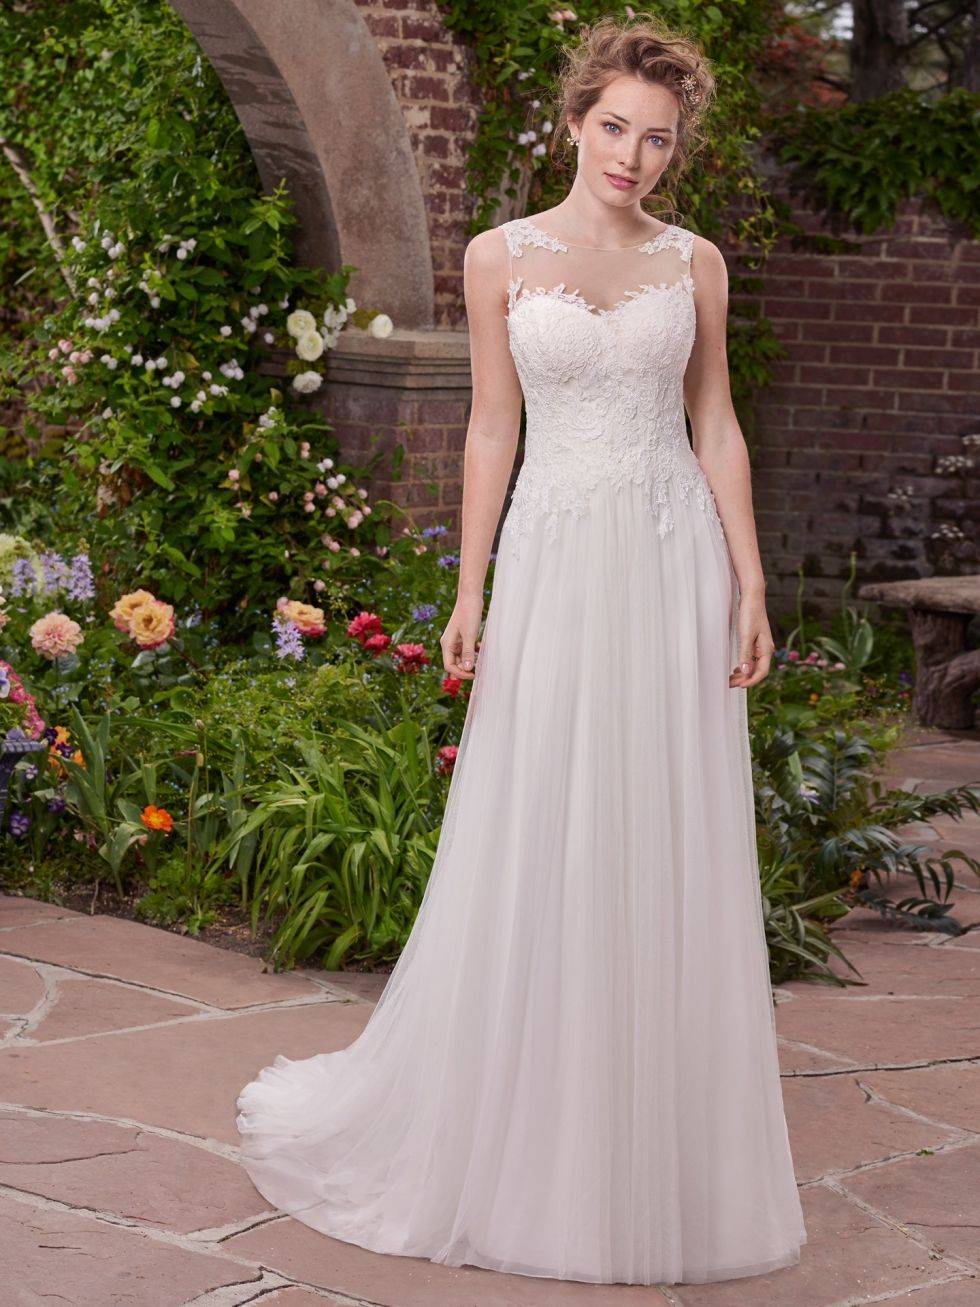 maggie sottero wedding gown with lace bodice and english net skirt ...